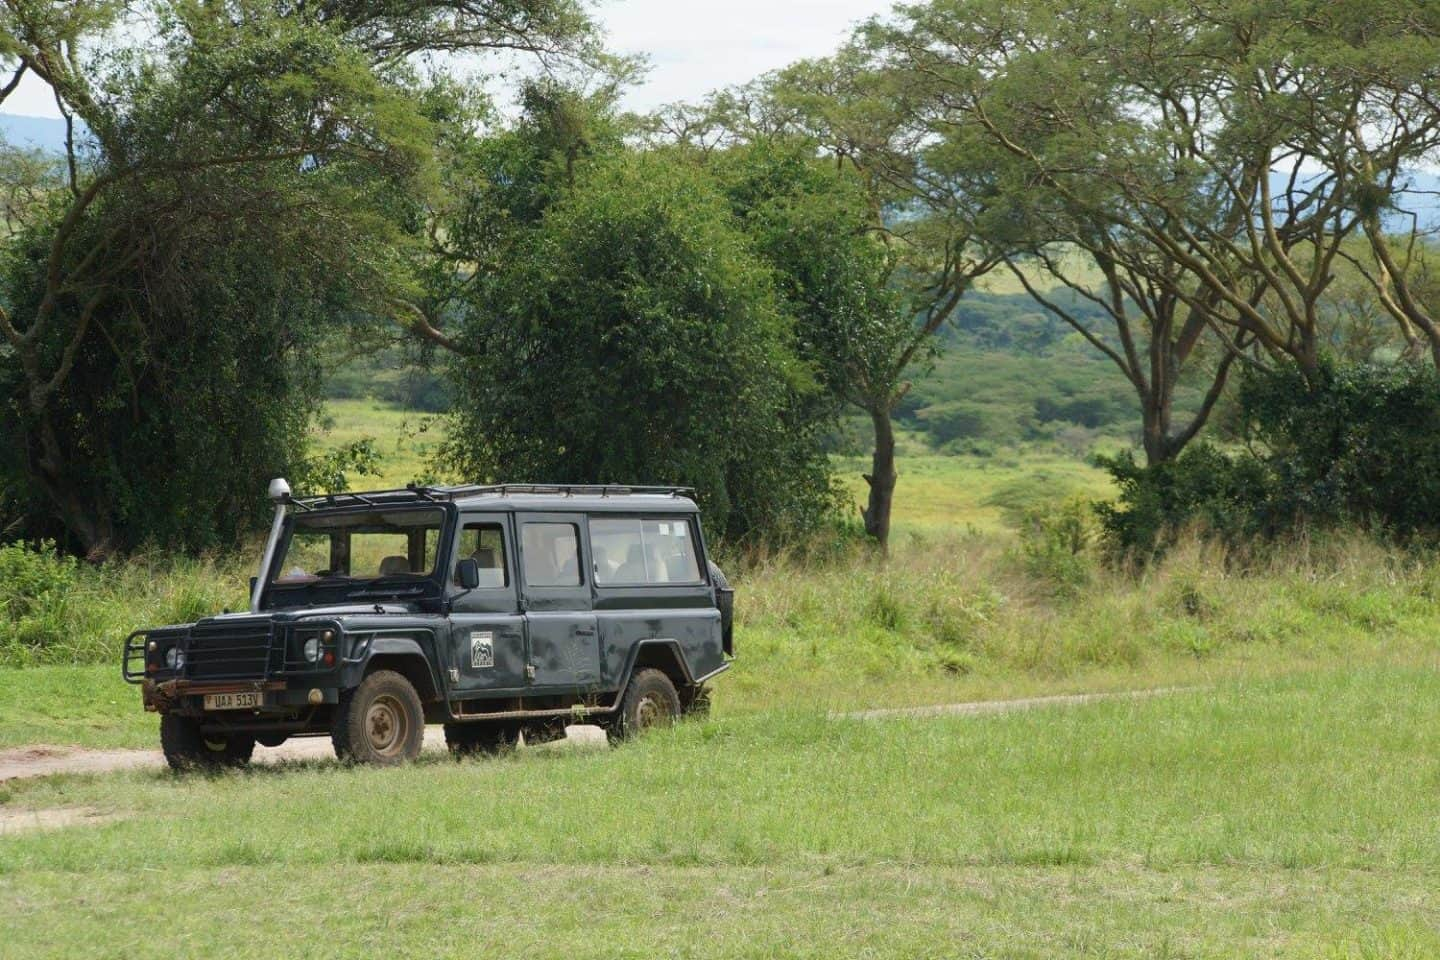 Uganda Safaris – Plane, train or automobile?